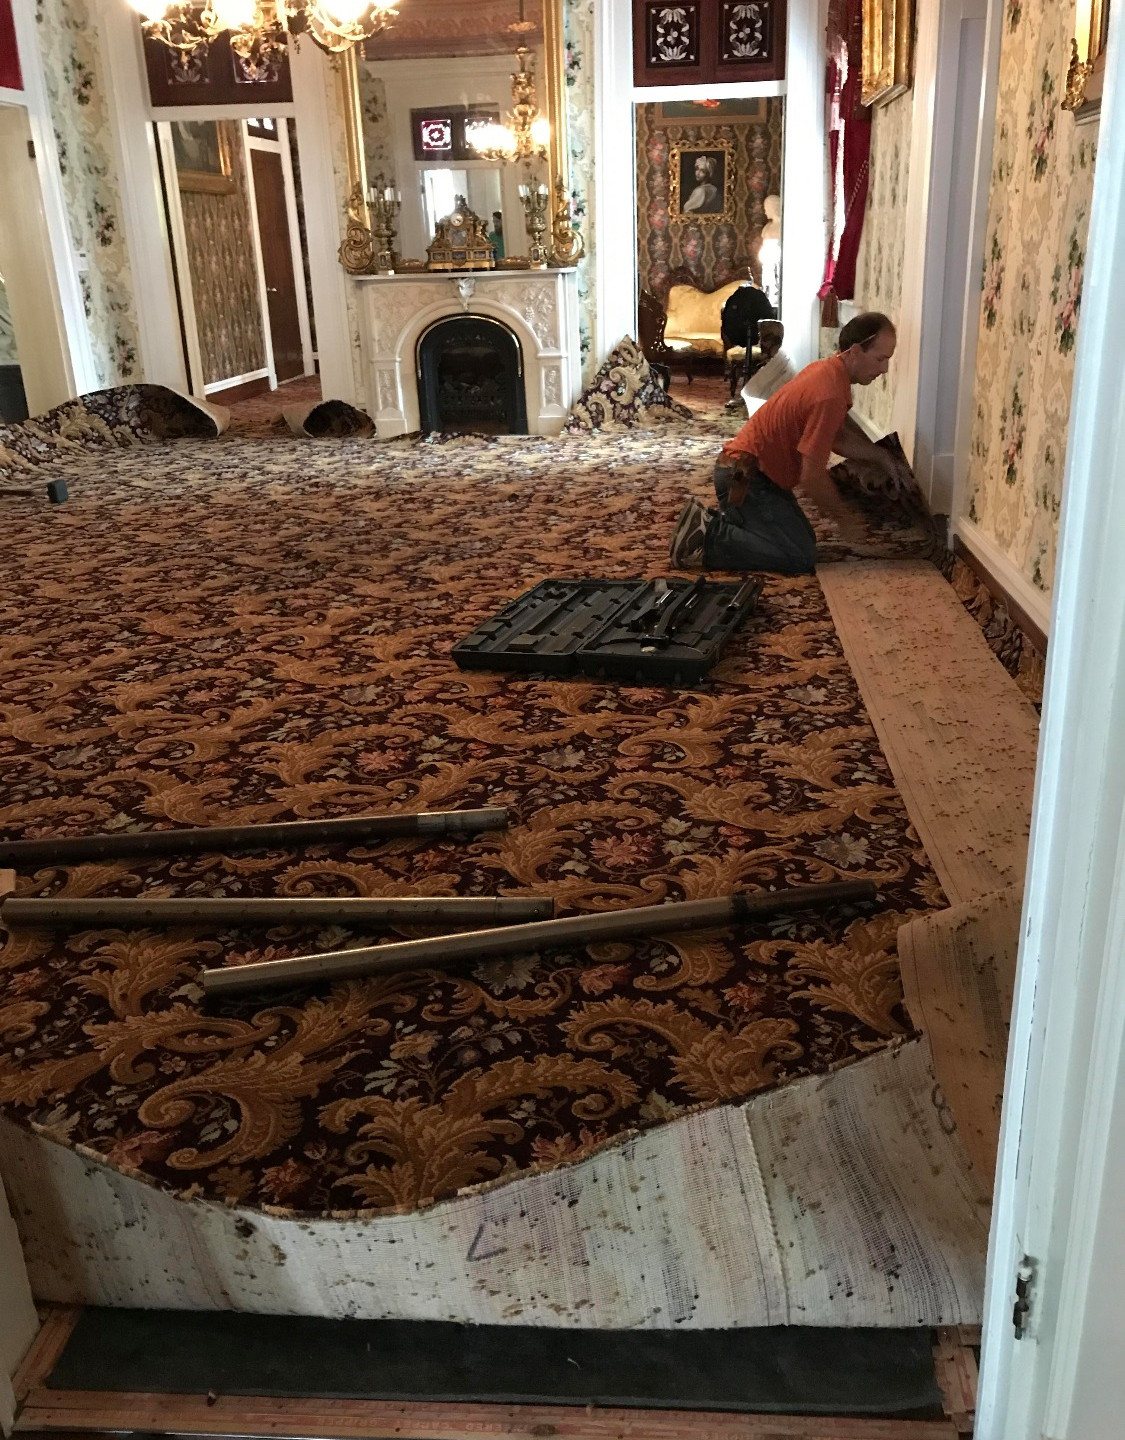 Carpet being stretched to reach the tack strip.